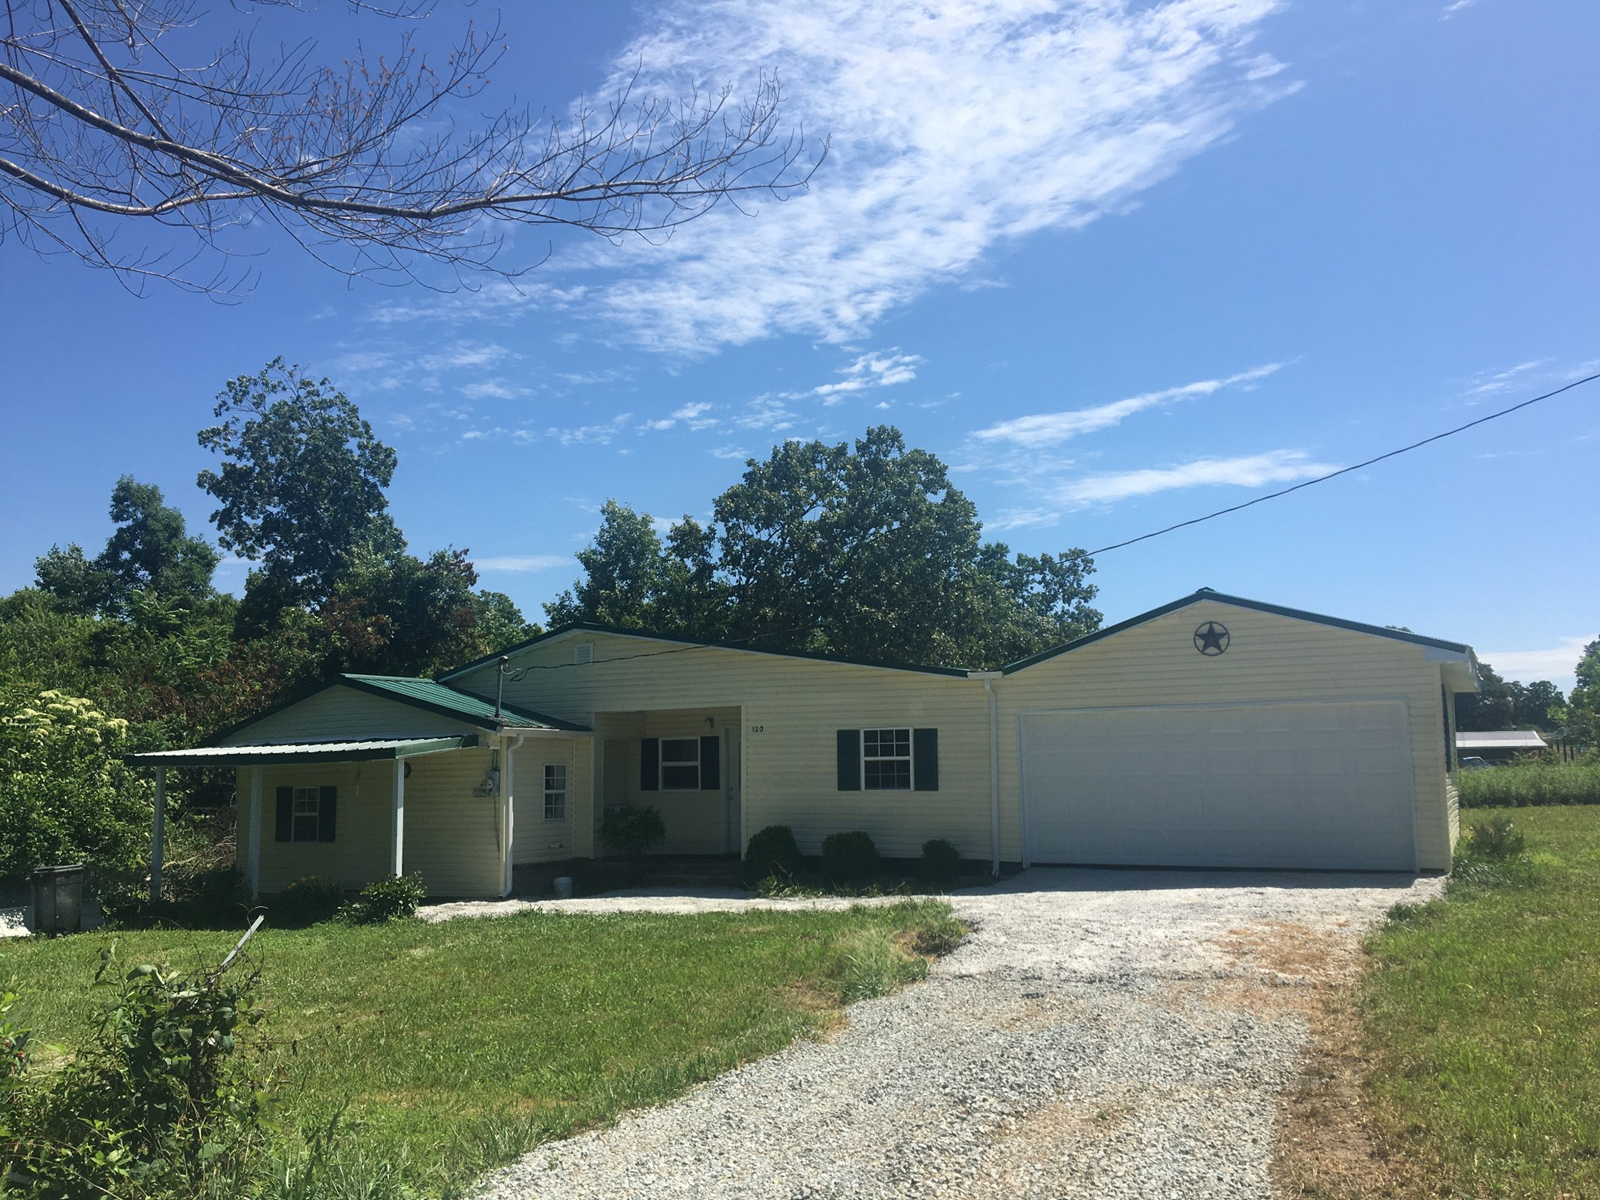 3 Bed 2 bath house for sale in Summertown TN